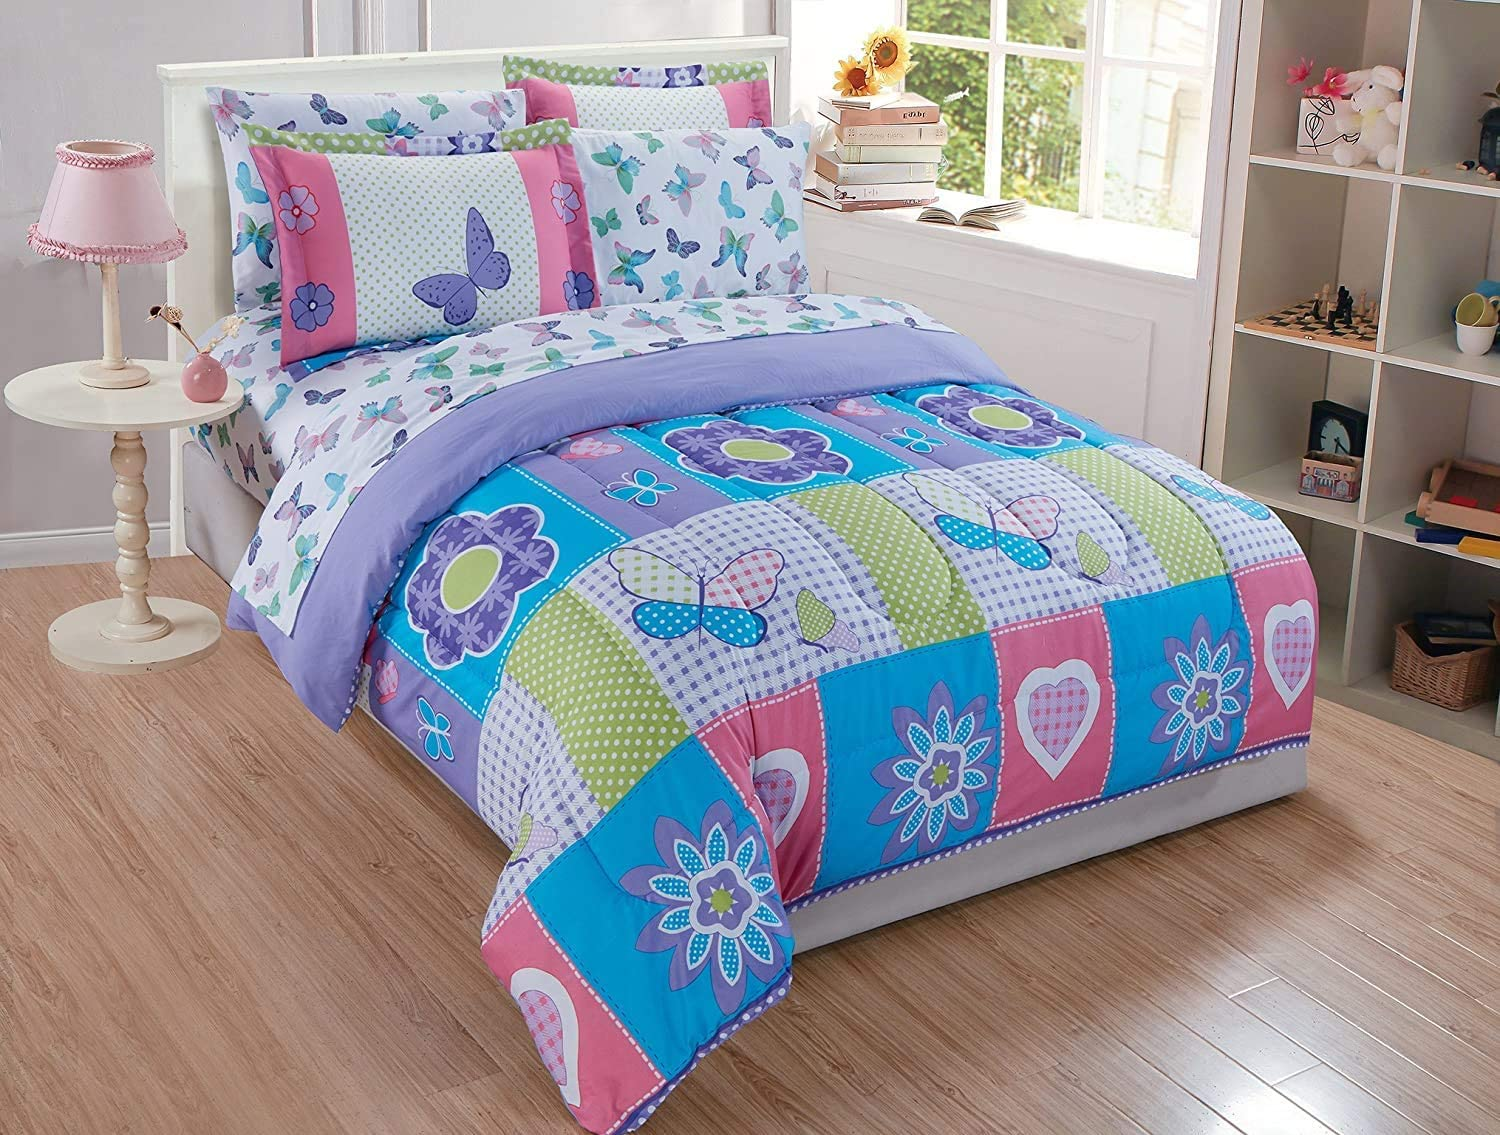 Mk Collection Comforter Set Butterfly Purple Pink Turquoise Green Flowers New (Queen)